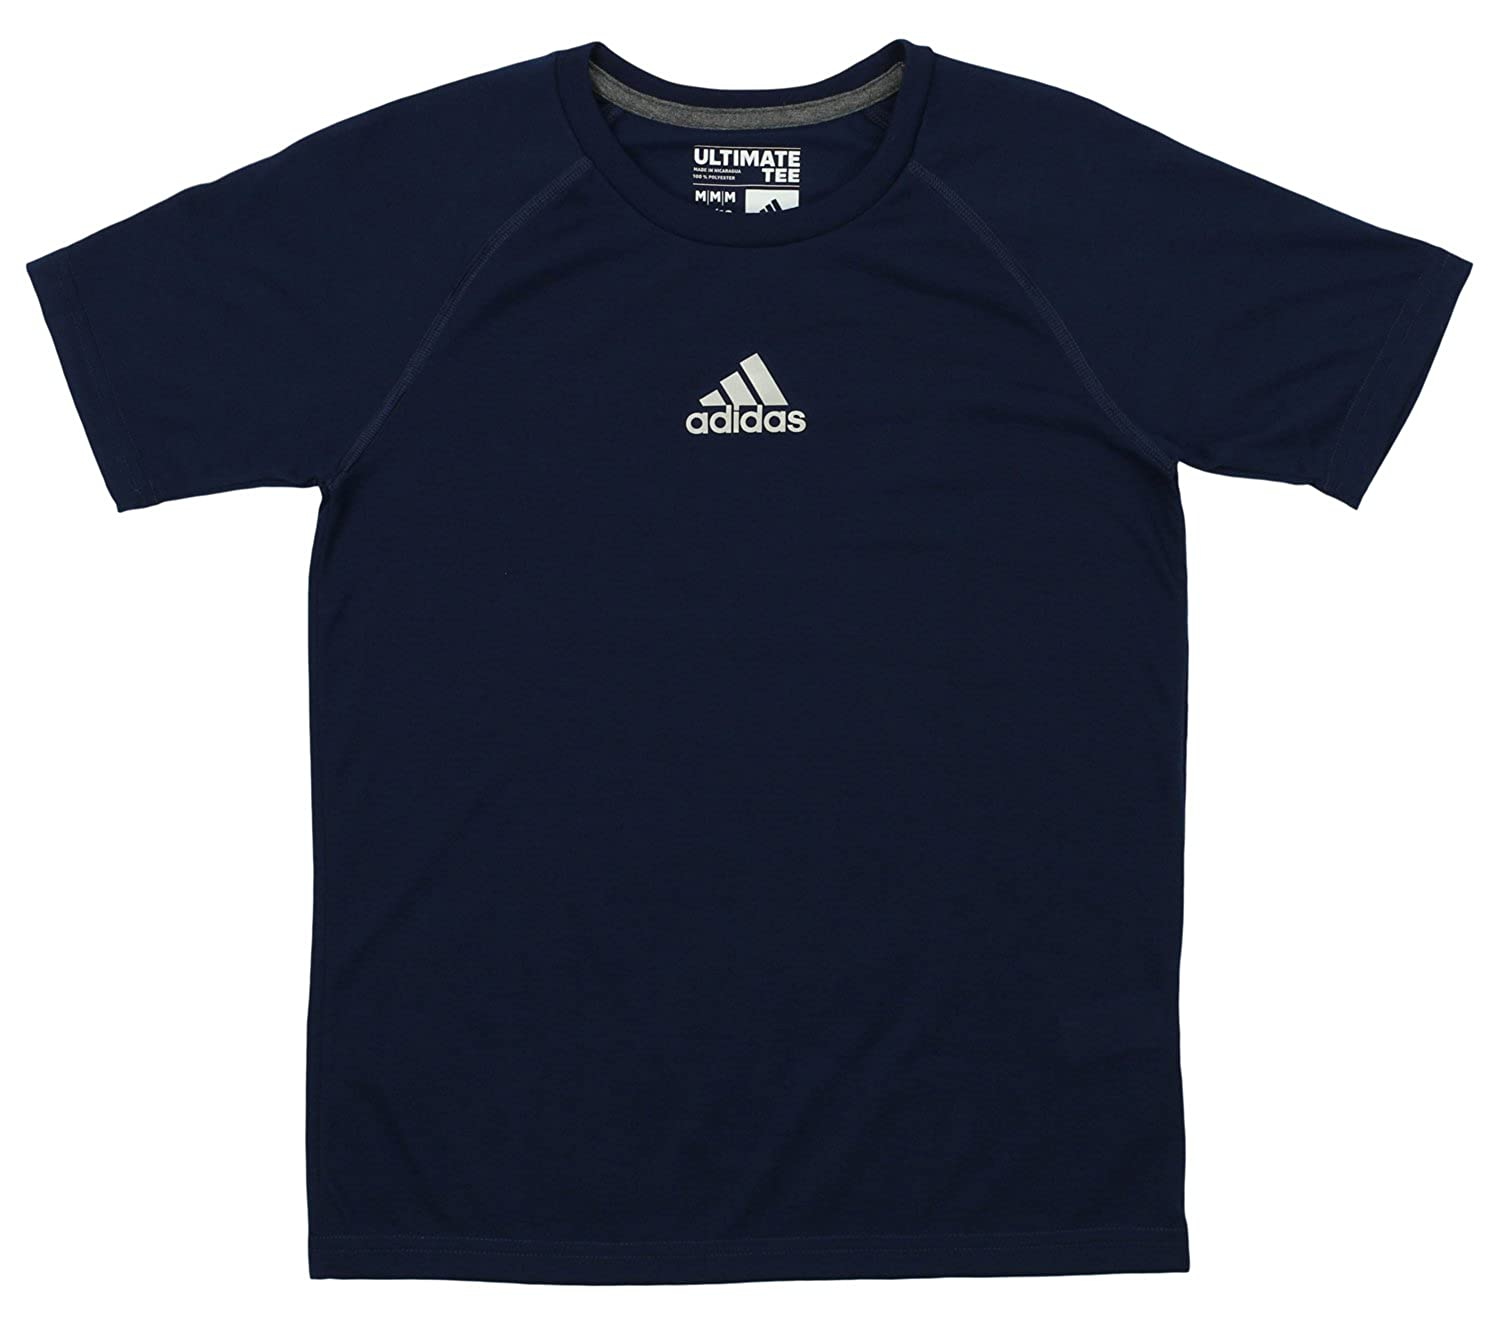 info for e22d6 6e1d8 Top2  adidas Boys 8-20 Youth Ultimate Tee Core Navy Climalite T-Shirt